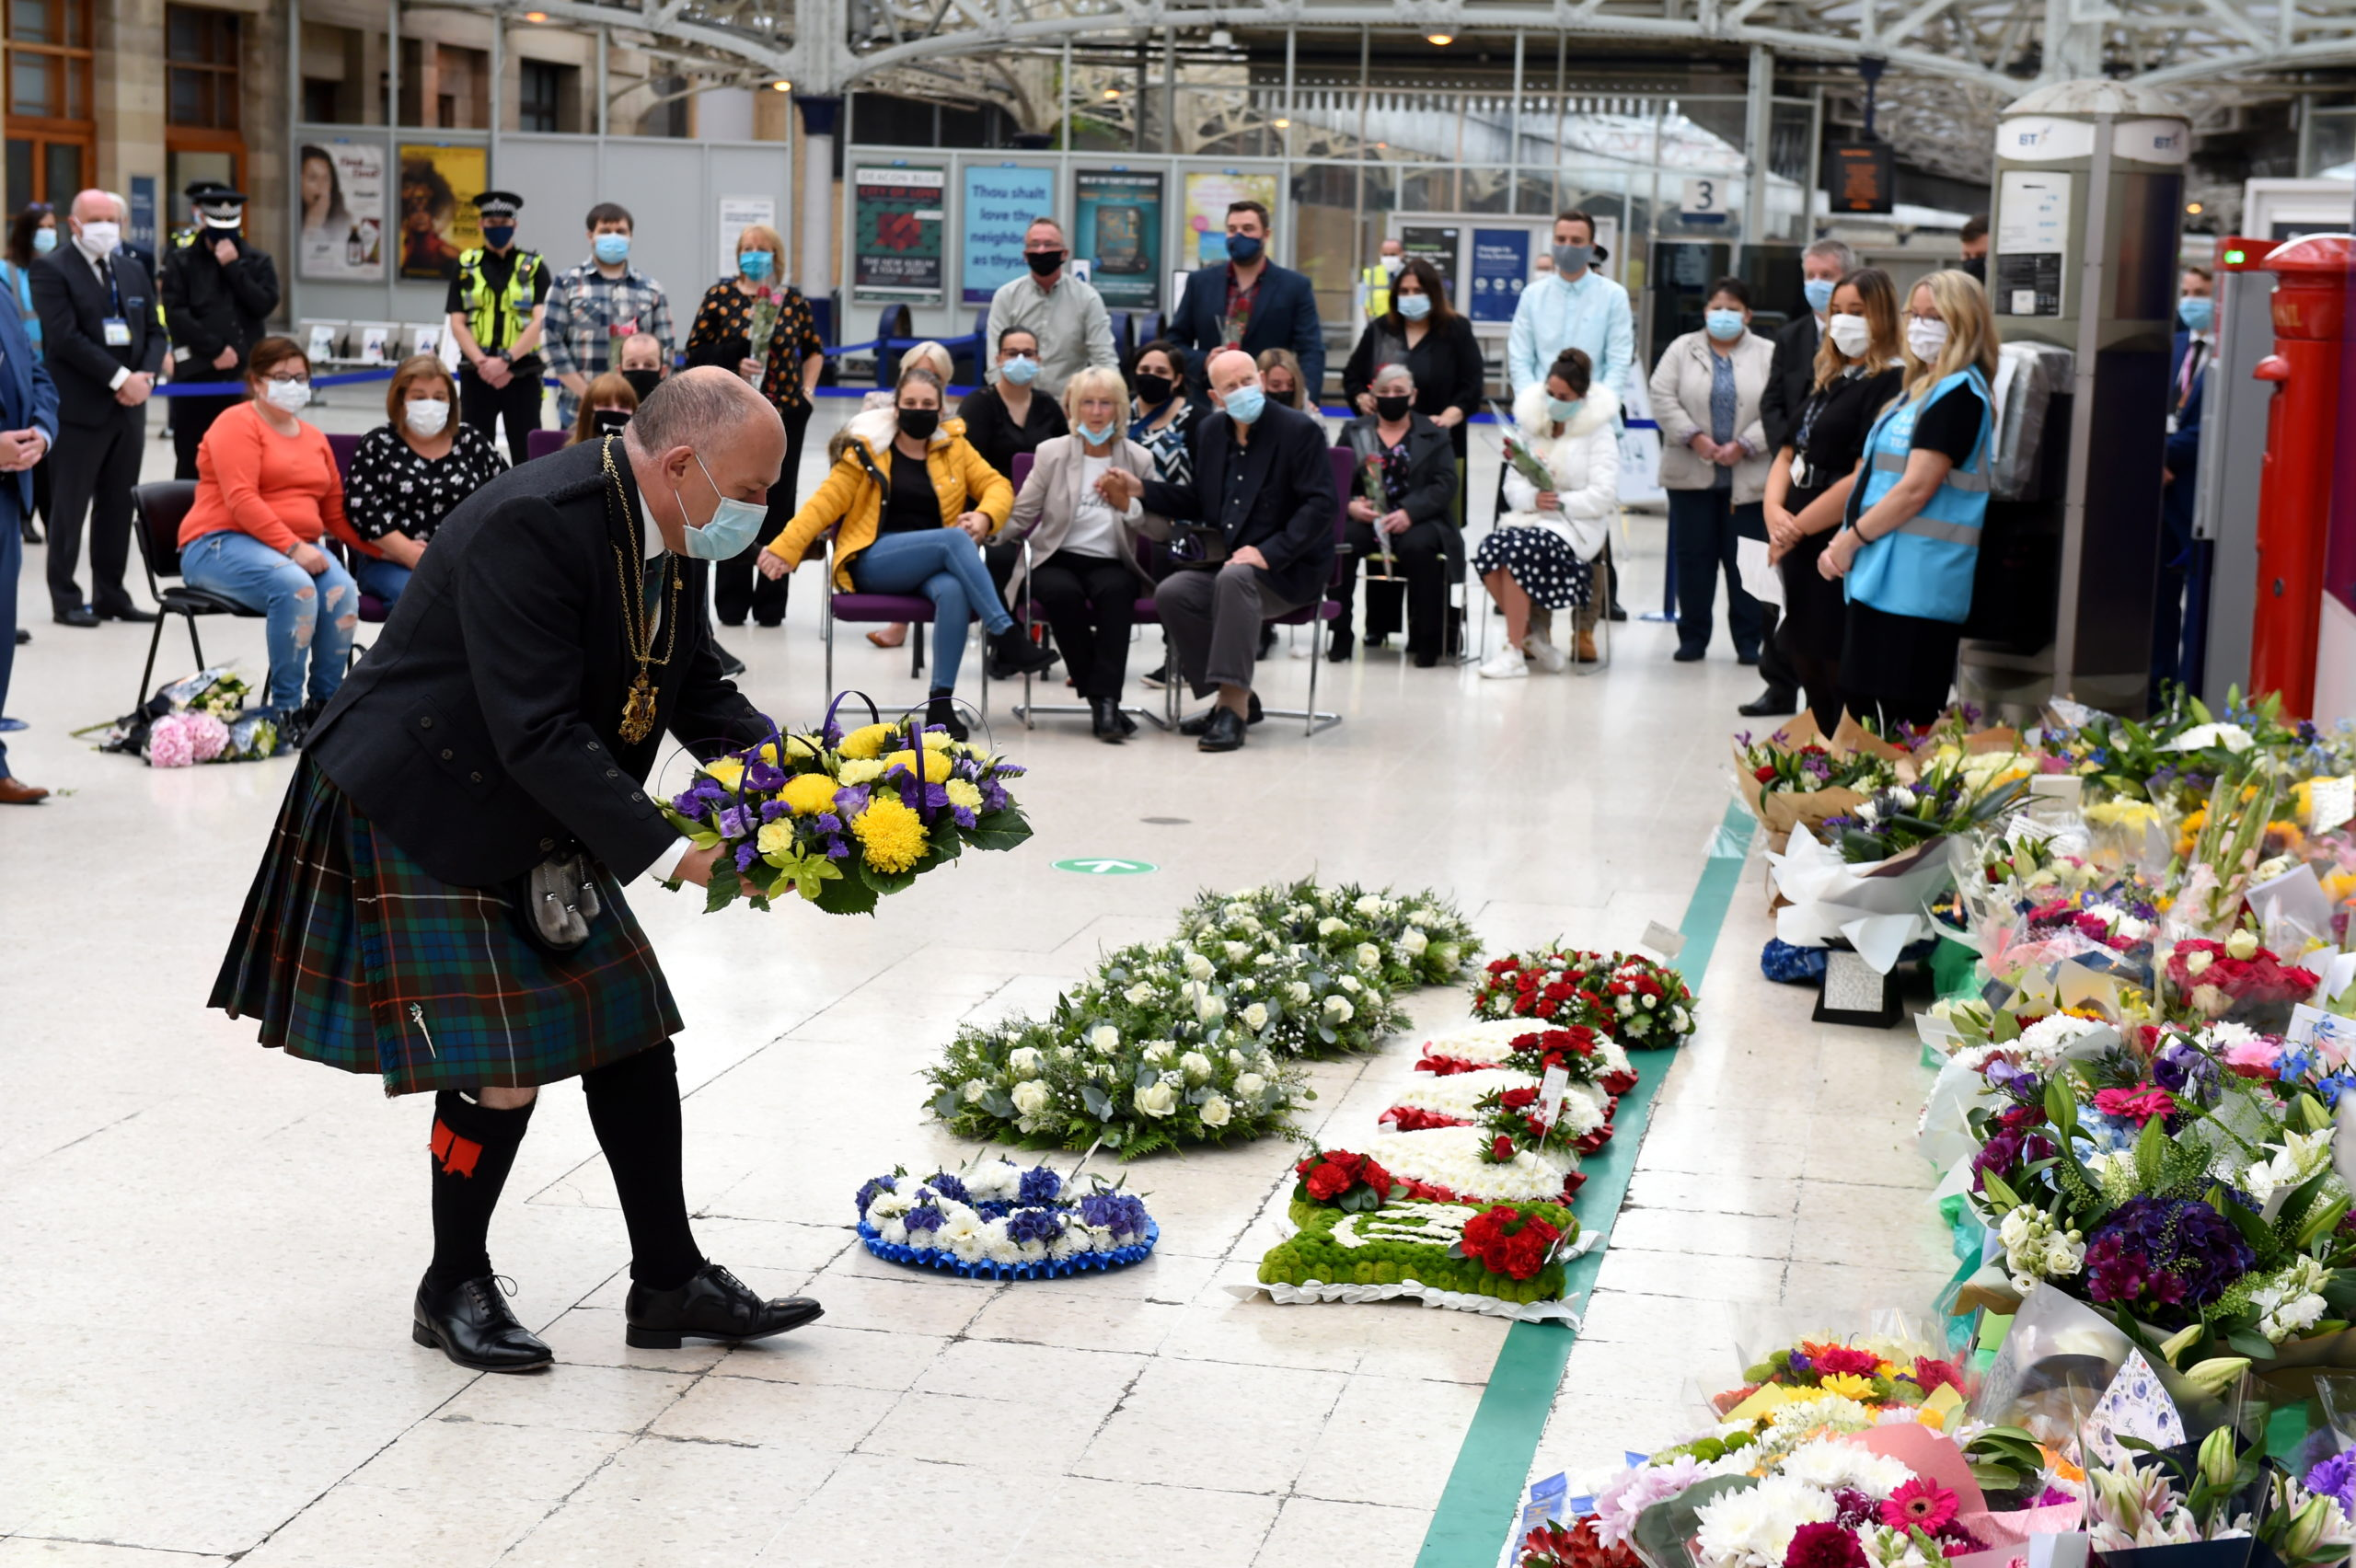 A minute's silence at Aberdeen Railway Station and at 9.43am to pay tribute to the victims of the Stonehaven derailment last week.